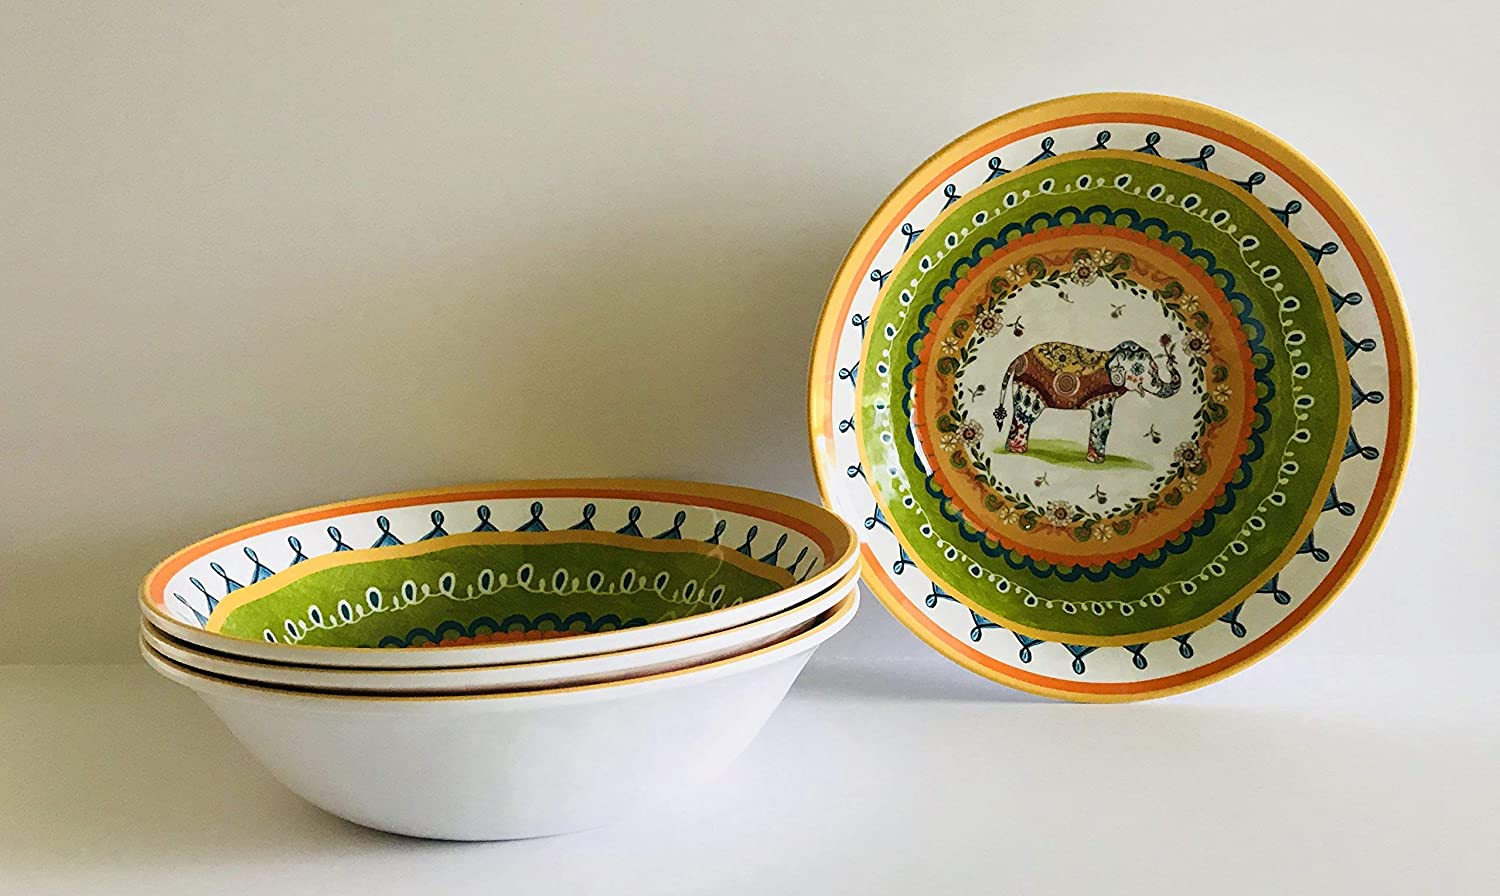 Lunch Plates Cereal Rice Pasta Soup Bowls Set Of 4 Or 2 Trunk Up Colorful Elephant Floral Melamine Serving|Dinner Set Of 4 | Rice | Pasta | Soup Bowls | 7.5 x 2 in, Green | Yellow | Blue | Orange